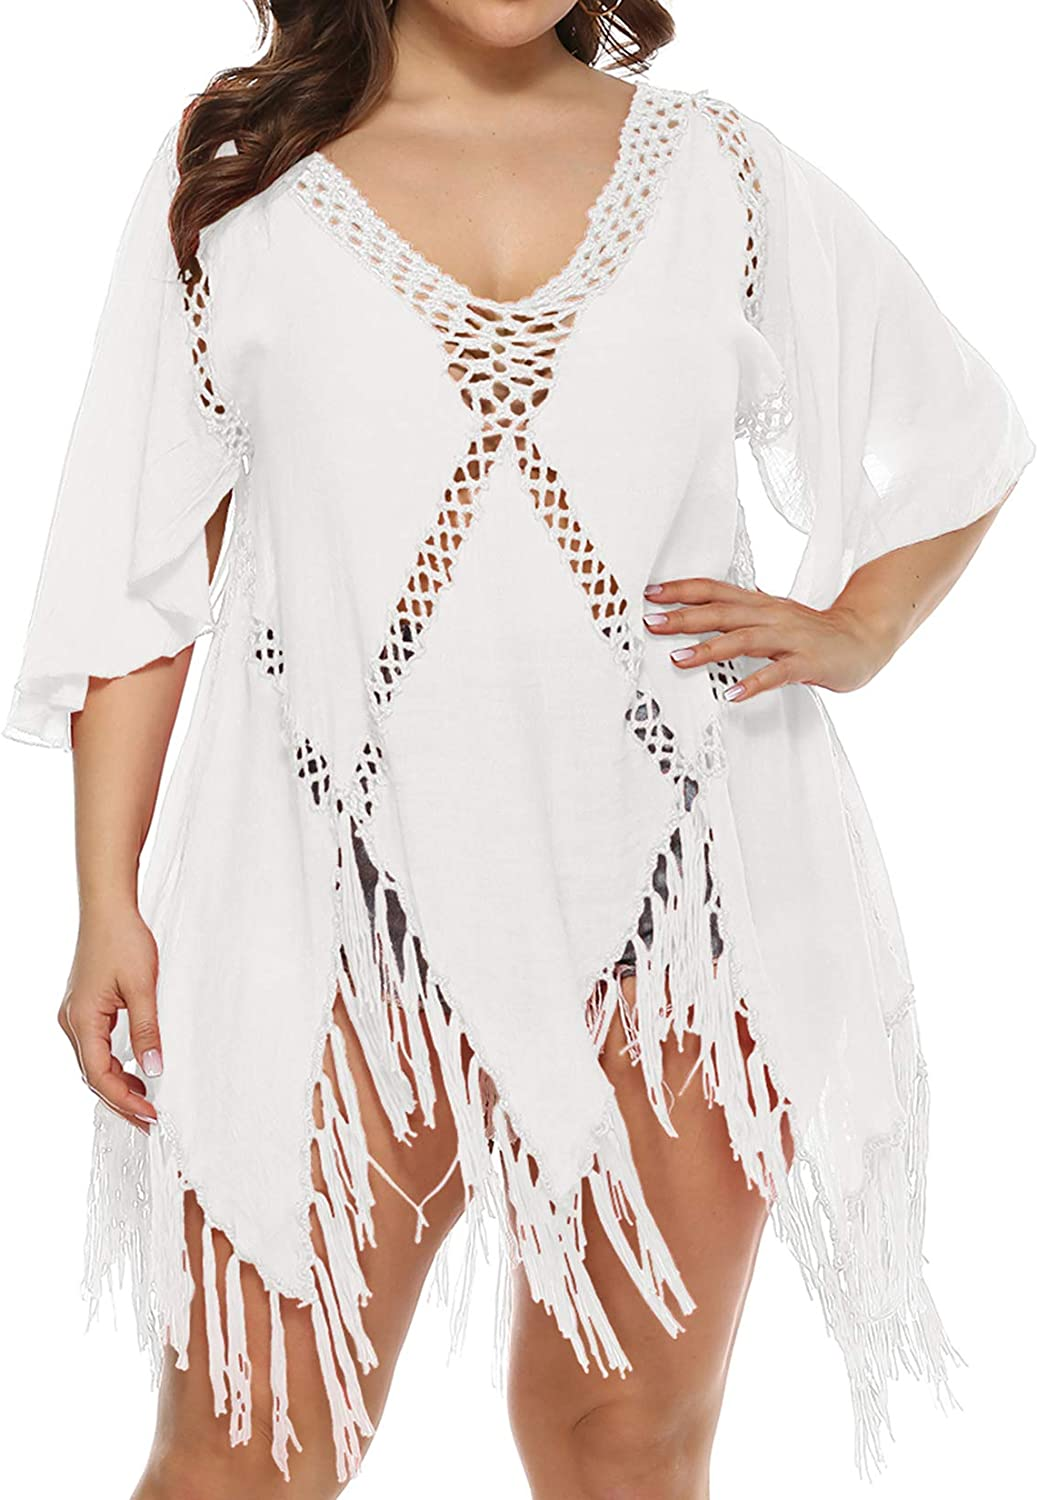 Lu's Chic Women's Crochet Beach Dress V Neck Cover Up Summer Knit Bathing Suit Coverups Hollow Solid